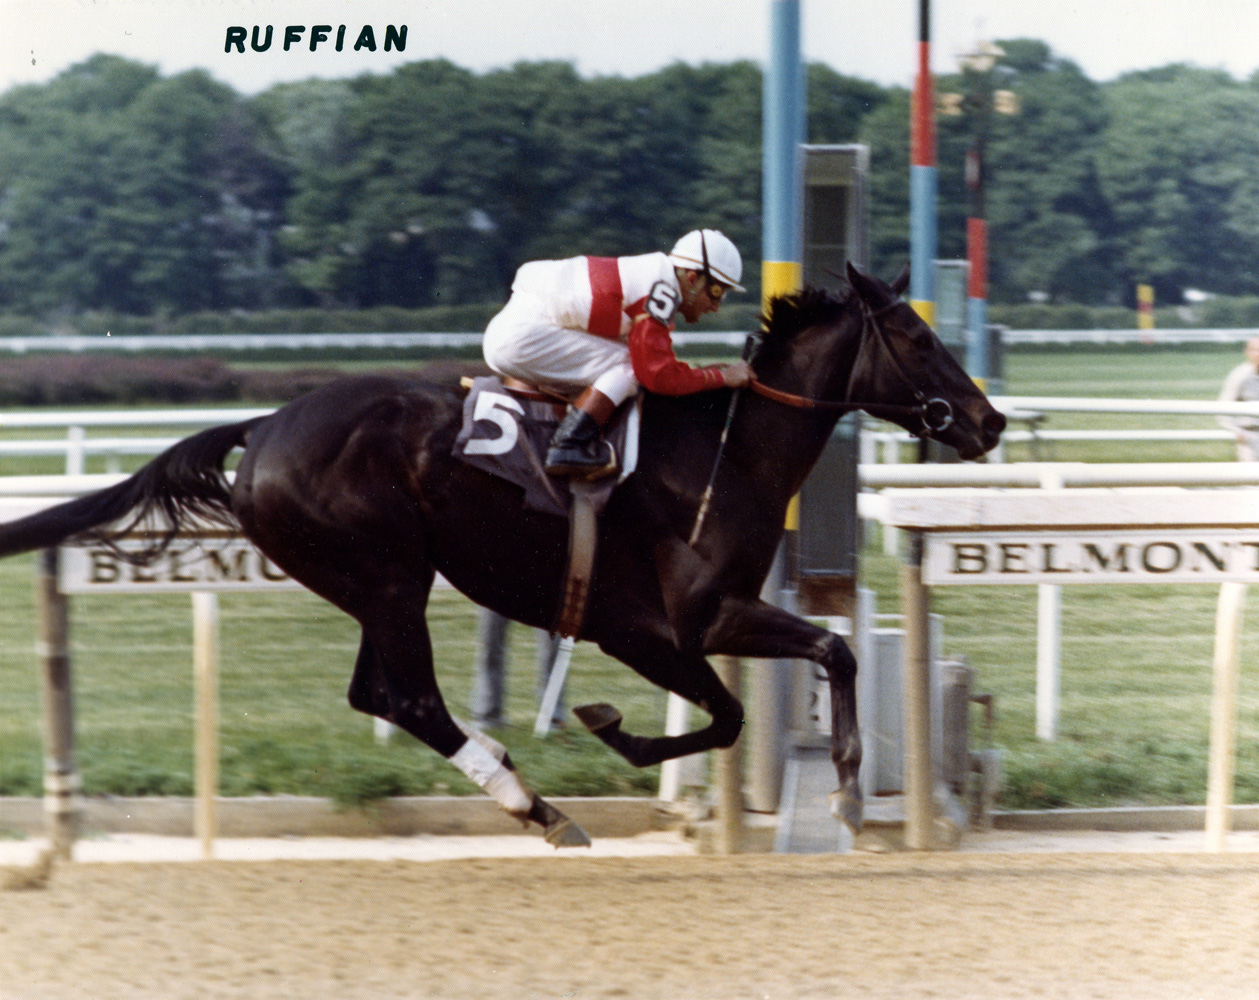 Ruffian (Jacinto Vasquez up) winning the 1975 Coaching Club American Oaks at Belmont Park (NYRA/Museum Collection)